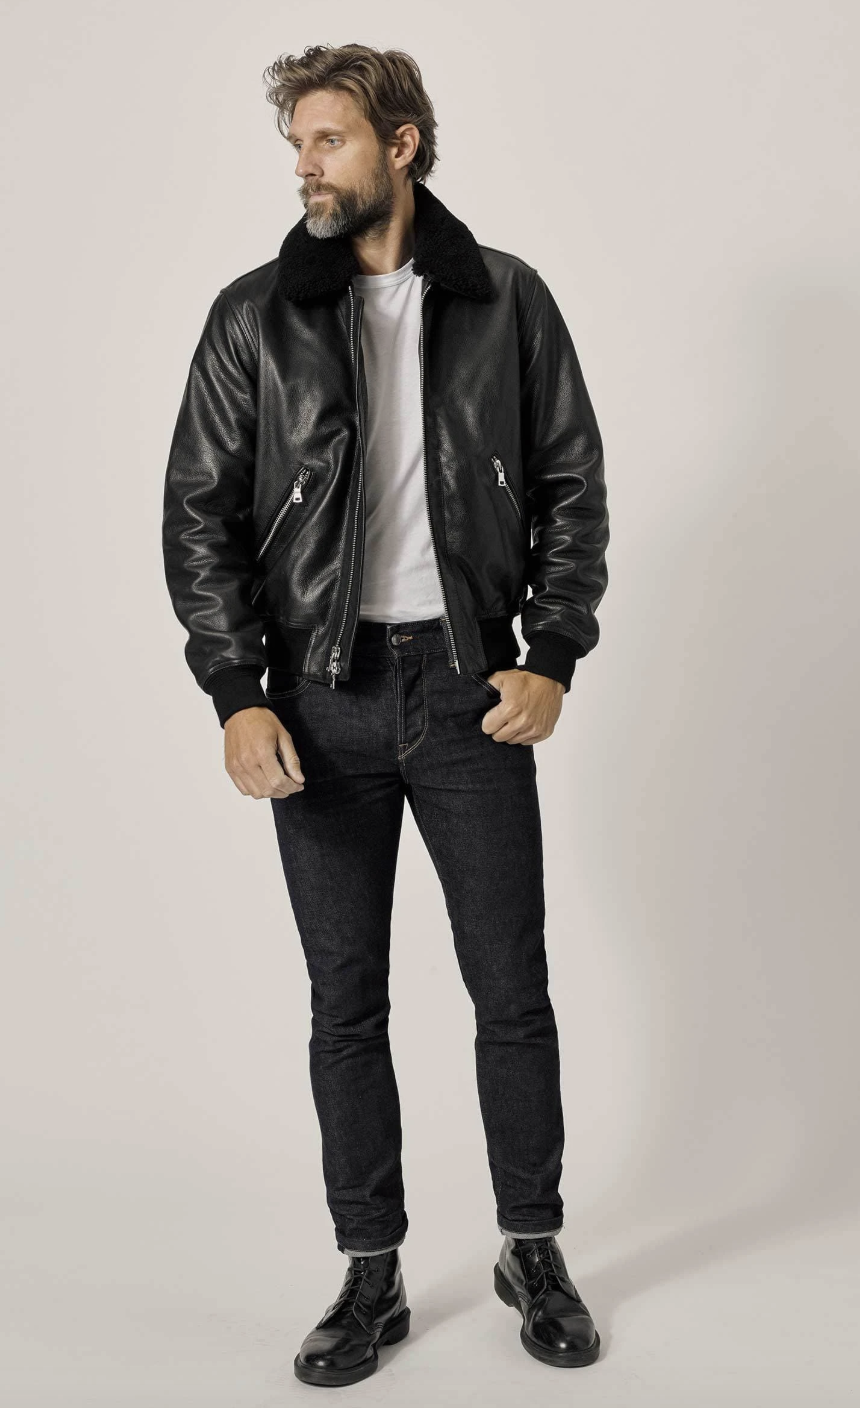 """<p>Buck Mason sells elevated basics with a bit of an edge. The brand's curved hem tees are modern-day staples, but it also offers a range of other thoughtful, hard-wearing items, all in a variety of cuts and fits (the leather styles, in particular, are always seasonal standouts).</p><p><a class=""""link rapid-noclick-resp"""" href=""""https://go.redirectingat.com?id=74968X1596630&url=https%3A%2F%2Fwww.buckmason.com%2F&sref=https%3A%2F%2Fwww.esquire.com%2Fstyle%2Fmens-fashion%2Fg20686368%2Fbest-cheap-online-clothing-stores-for-men%2F"""" rel=""""nofollow noopener"""" target=""""_blank"""" data-ylk=""""slk:SHOP"""">SHOP</a> <em><a href=""""https://www.buckmason.com/"""" rel=""""nofollow noopener"""" target=""""_blank"""" data-ylk=""""slk:buckmason.com"""" class=""""link rapid-noclick-resp"""">buckmason.com</a></em></p>"""